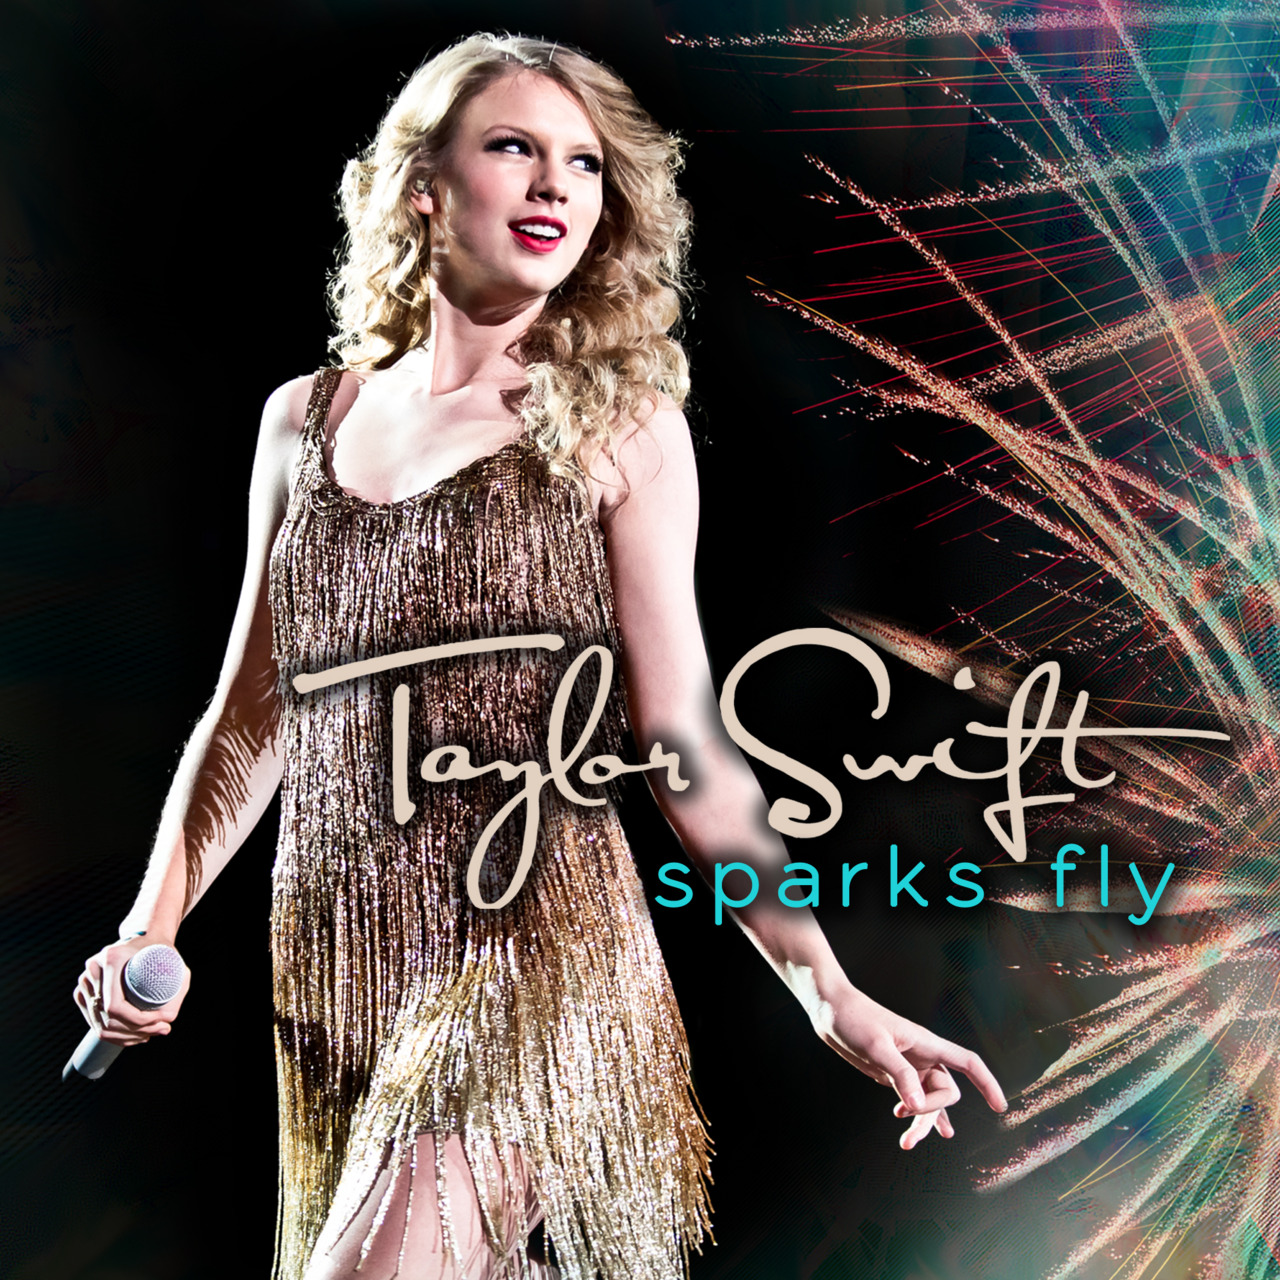 Sparks Fly Red Tour